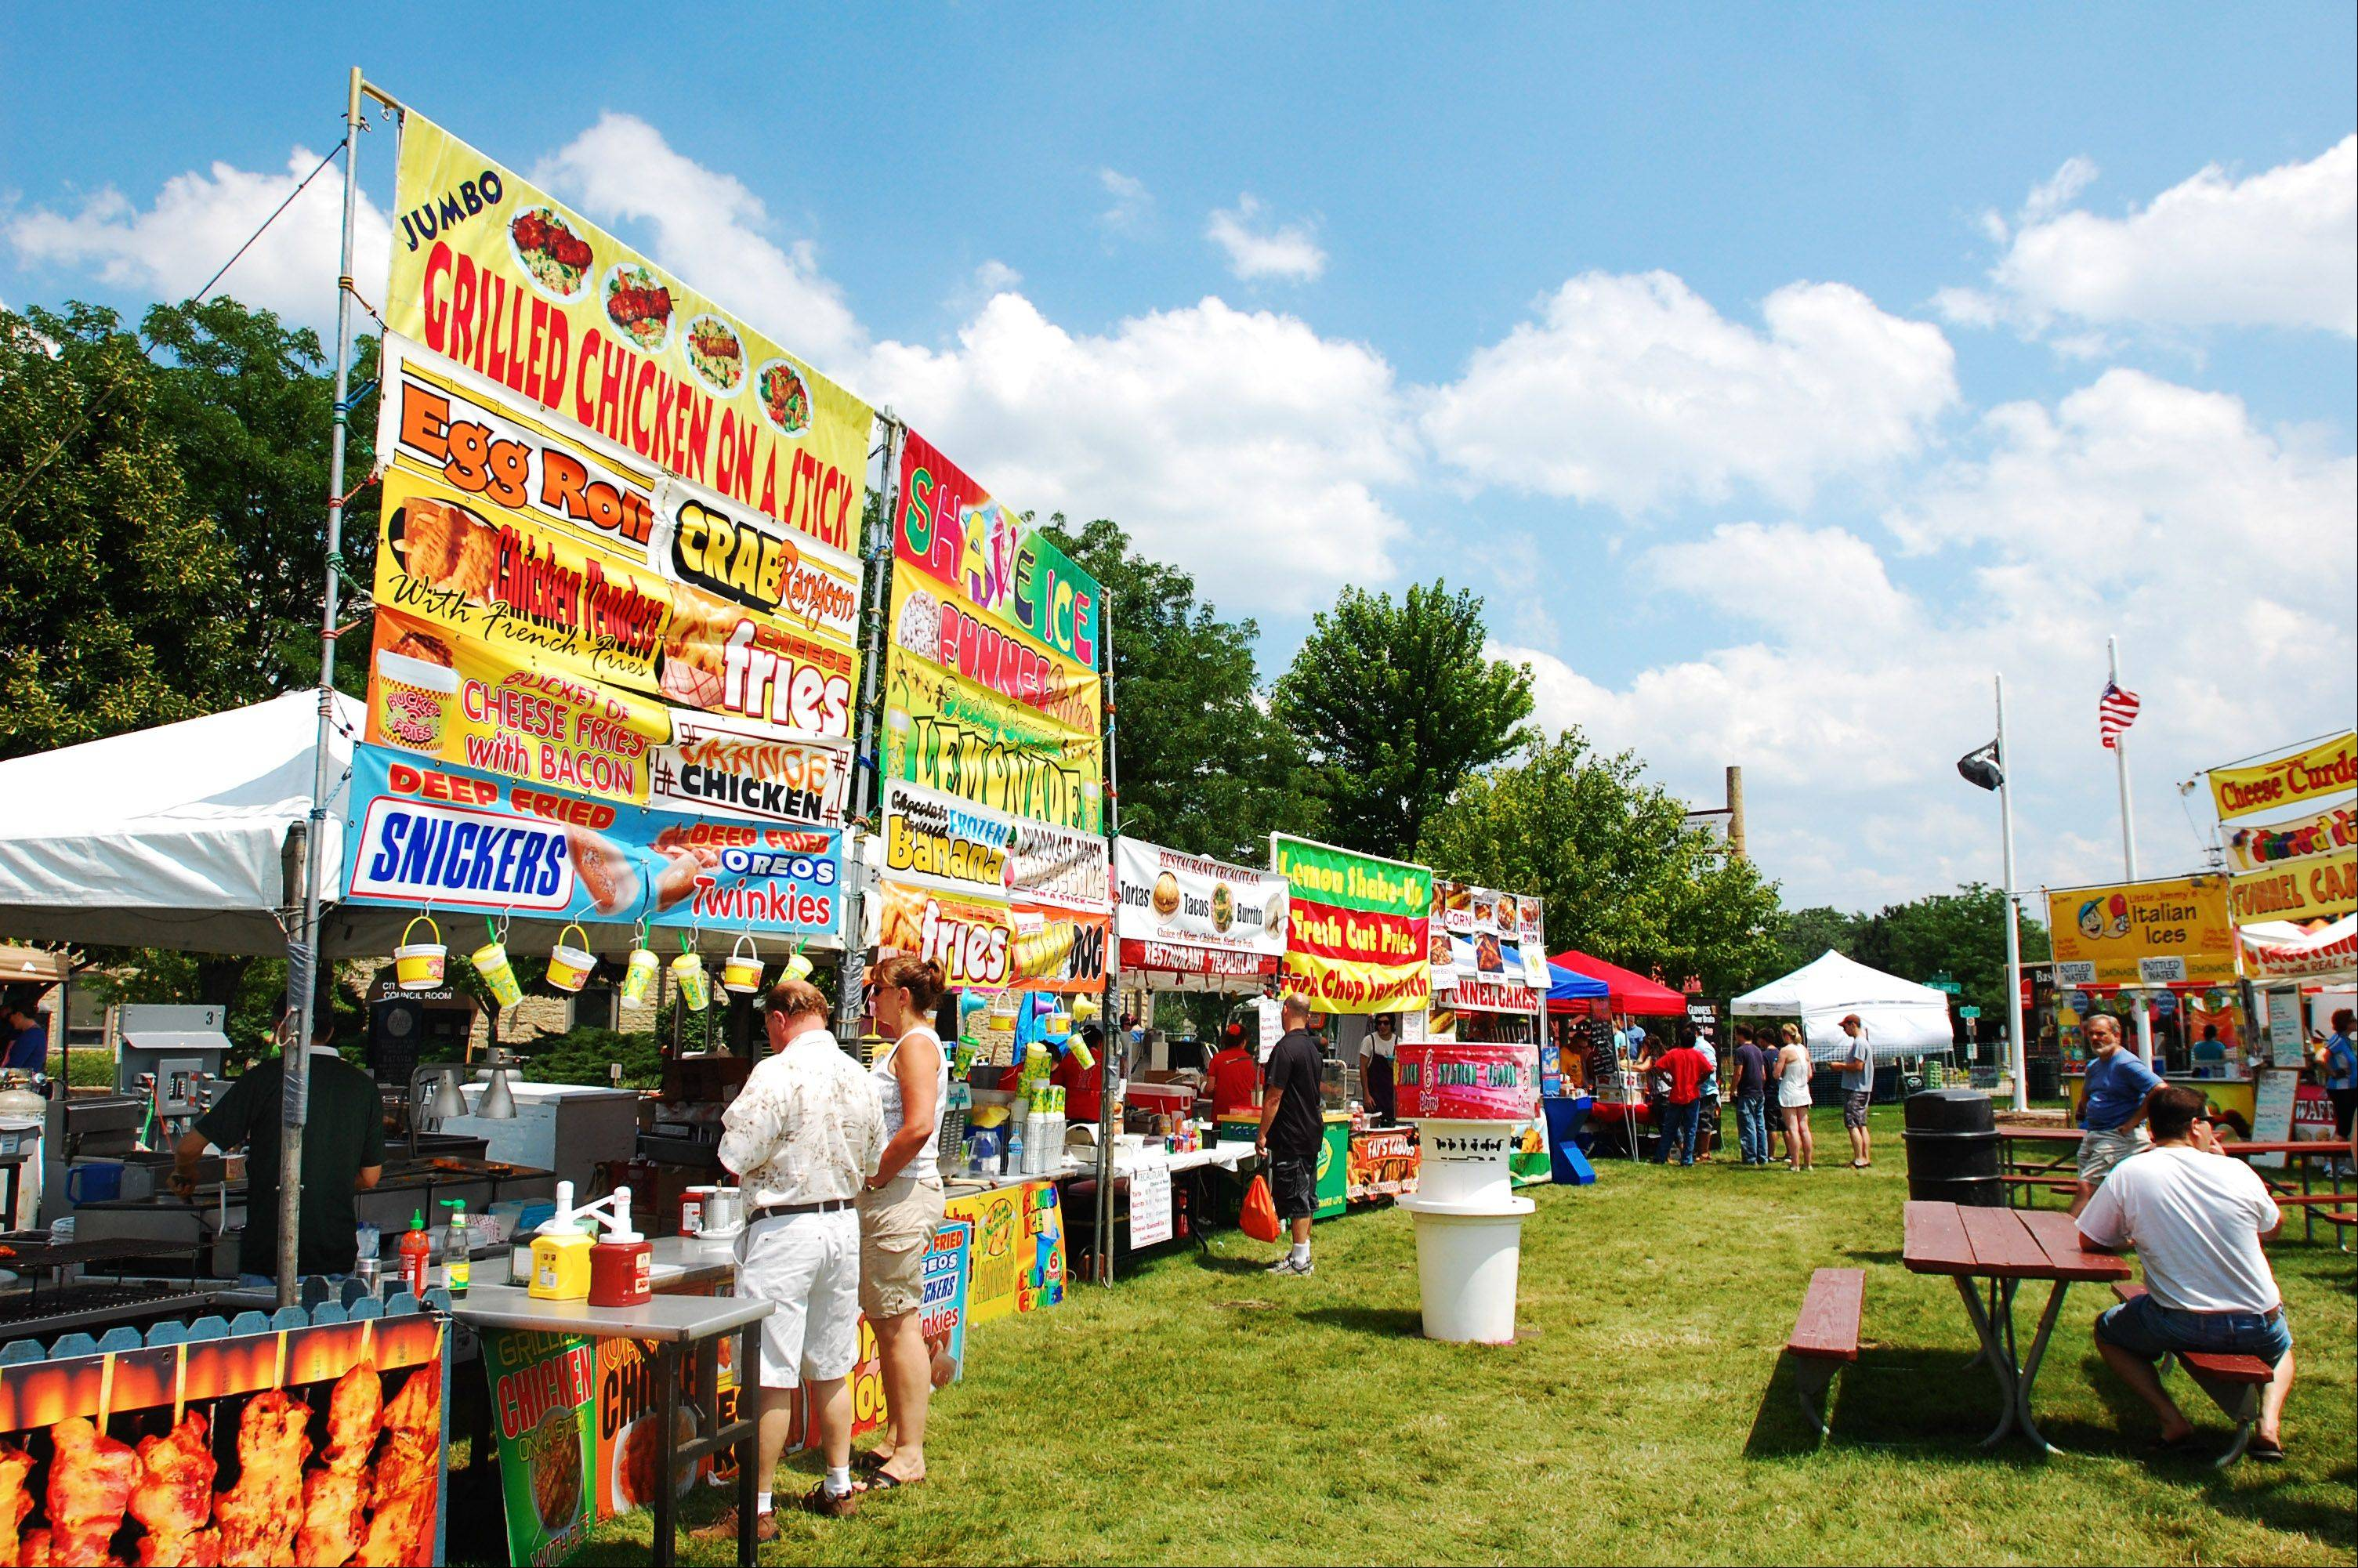 Vendors line the park in Batavia's Riverwalk Sunday, July 14 for the Windmill City Festival.